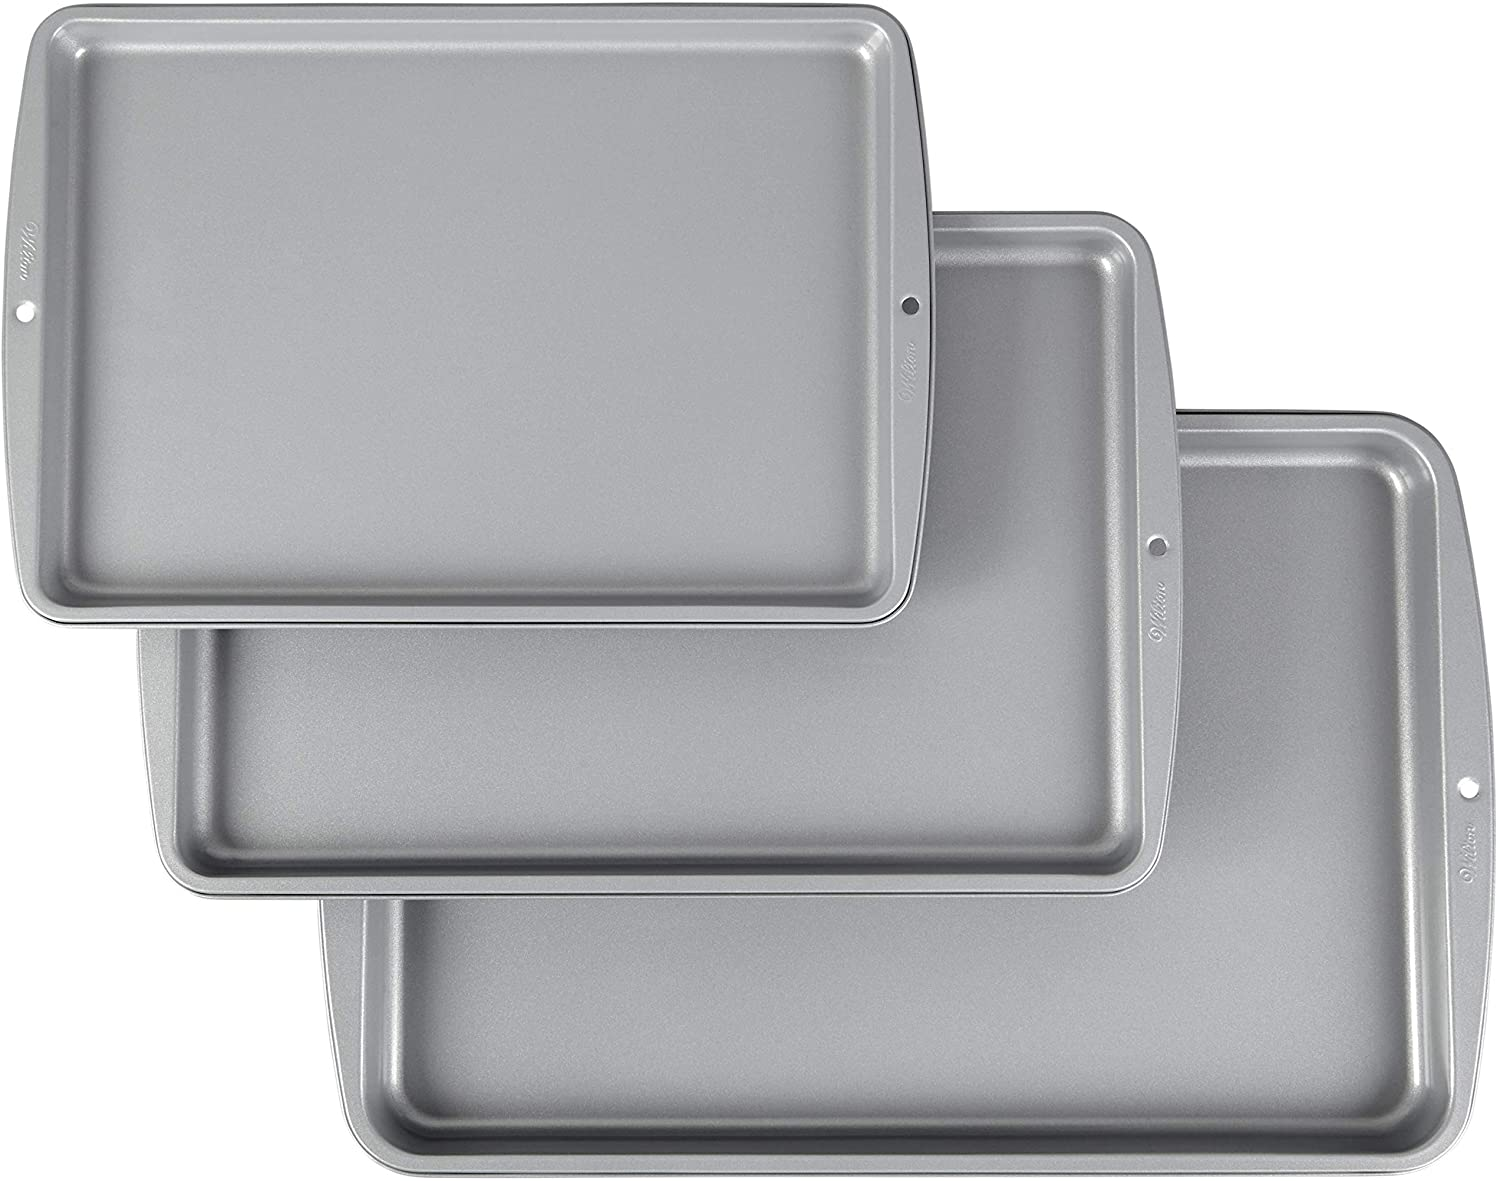 COOKIE SHEET PANS